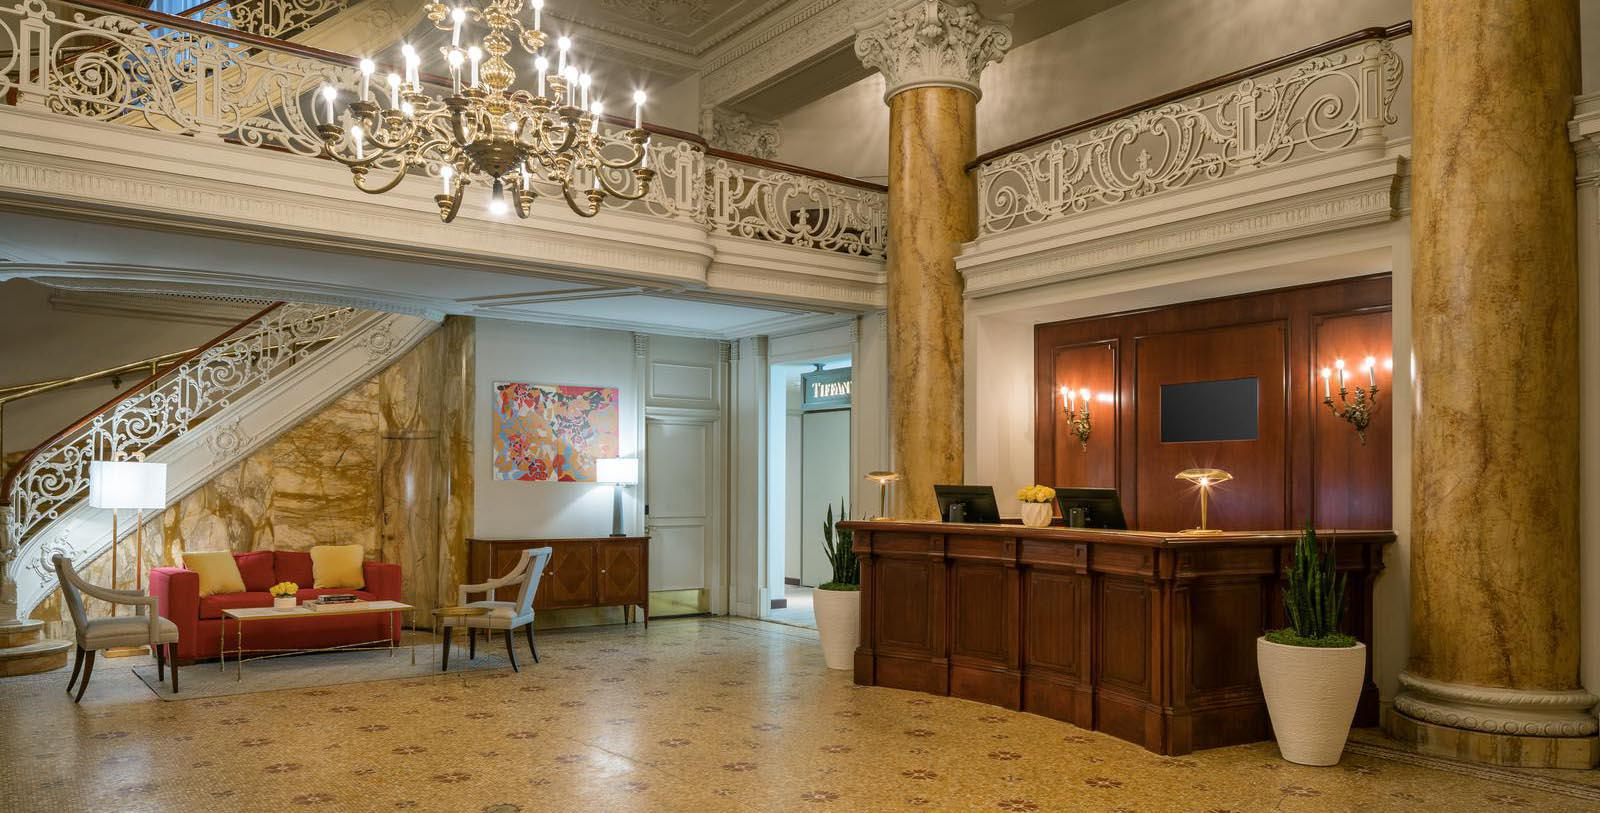 Image of the Lobby The Bellevue Hotel, 1904, Member of Historic Hotels of America, in Philadelphia, Pennsylvania, Special Offers, Discounted Rates, Families, Romantic Escape, Honeymoons, Anniversaries, Reunions